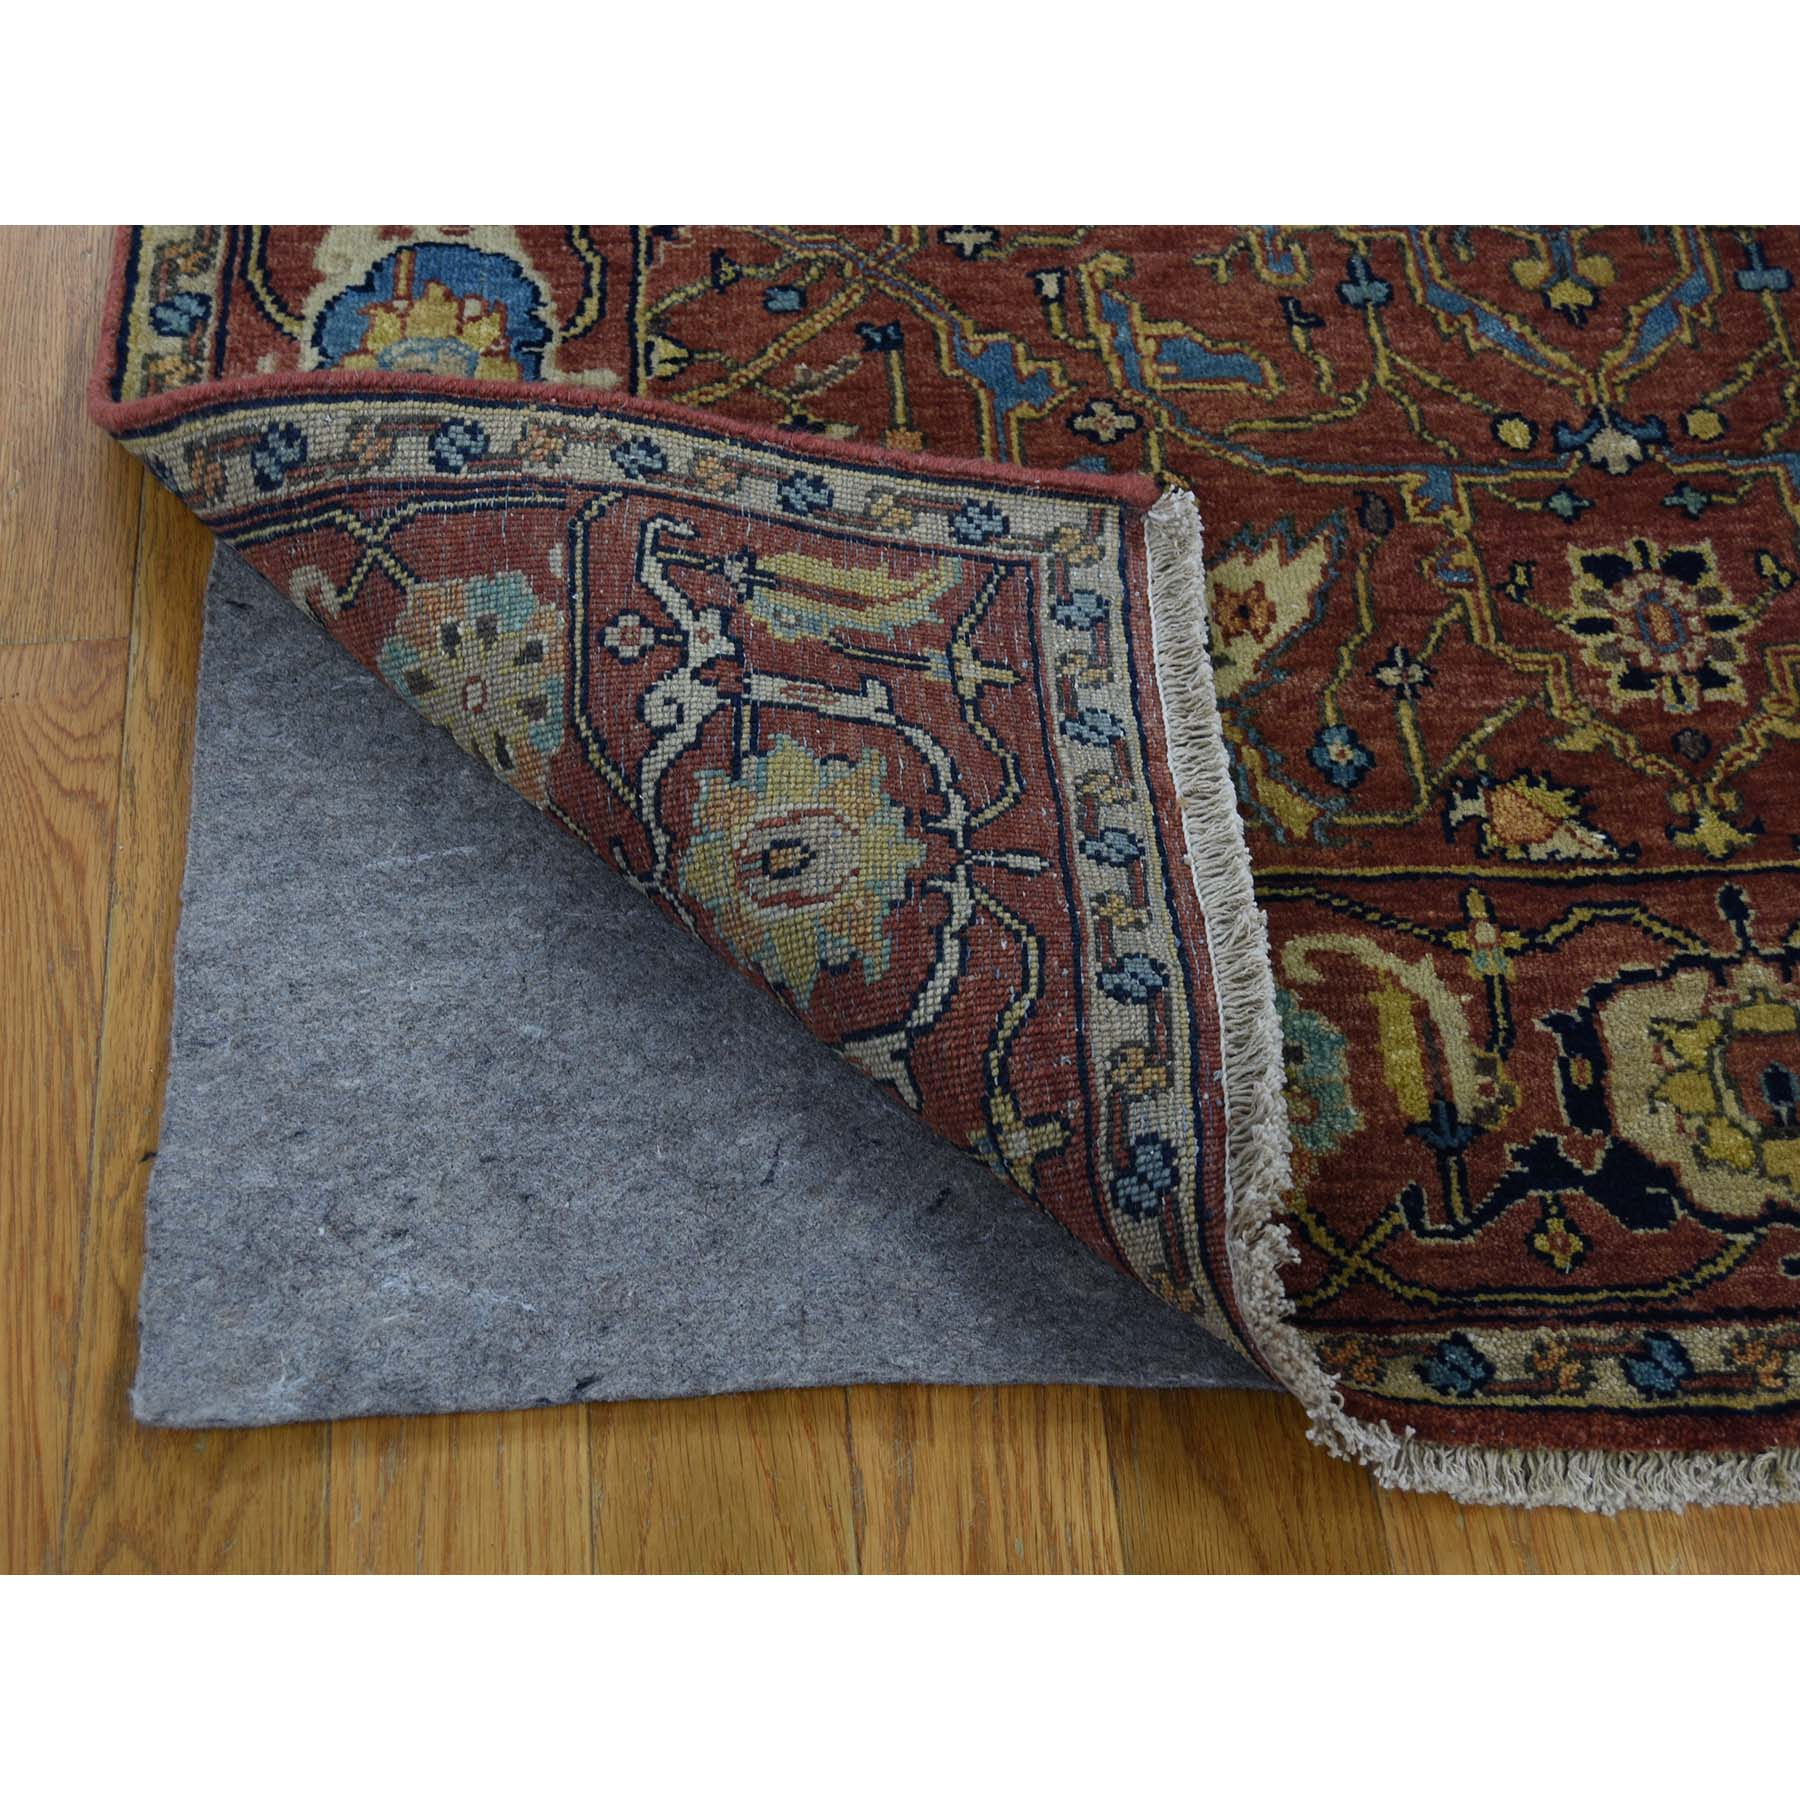 3-10 x6- Antiqued Heriz Re-Creation All Over Design Hand-Knotted Rug